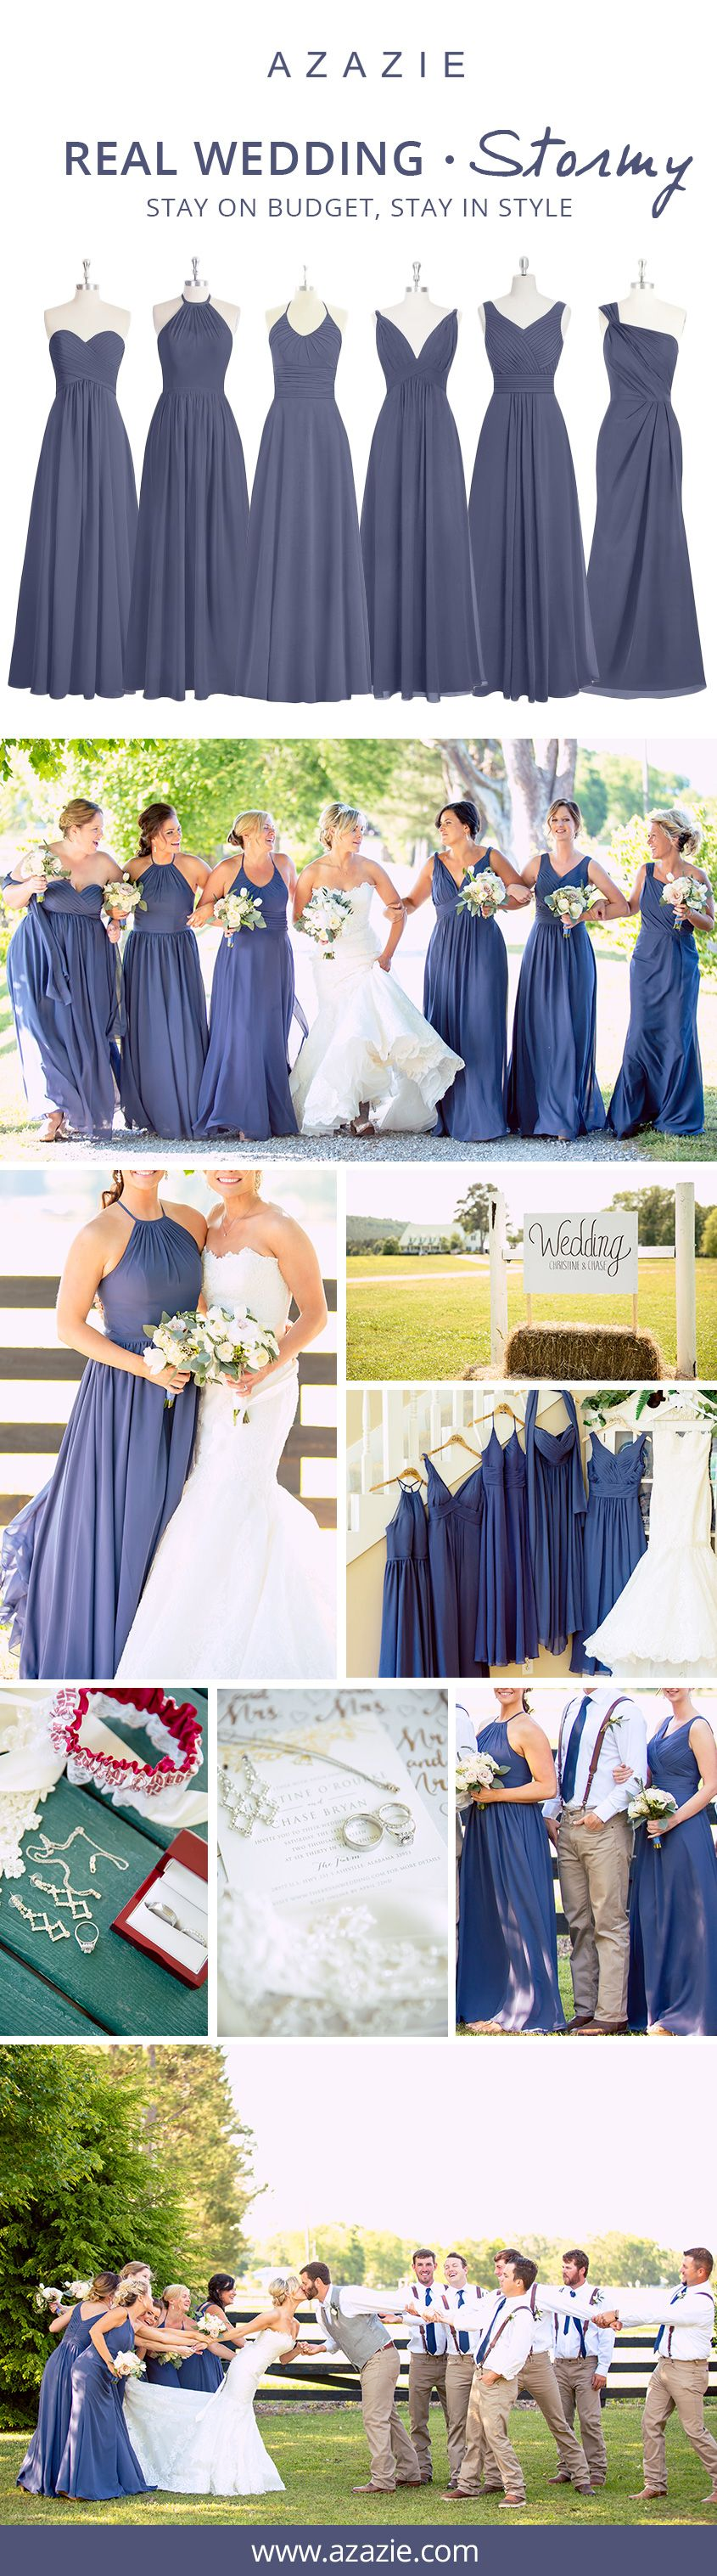 Looking for the perfect color for your bridesmaids this fall stormy is the way to steal the show on your wedding day let your bridesmaids personalities shine and mix n match your bridesmaid dresses ombrellifo Gallery